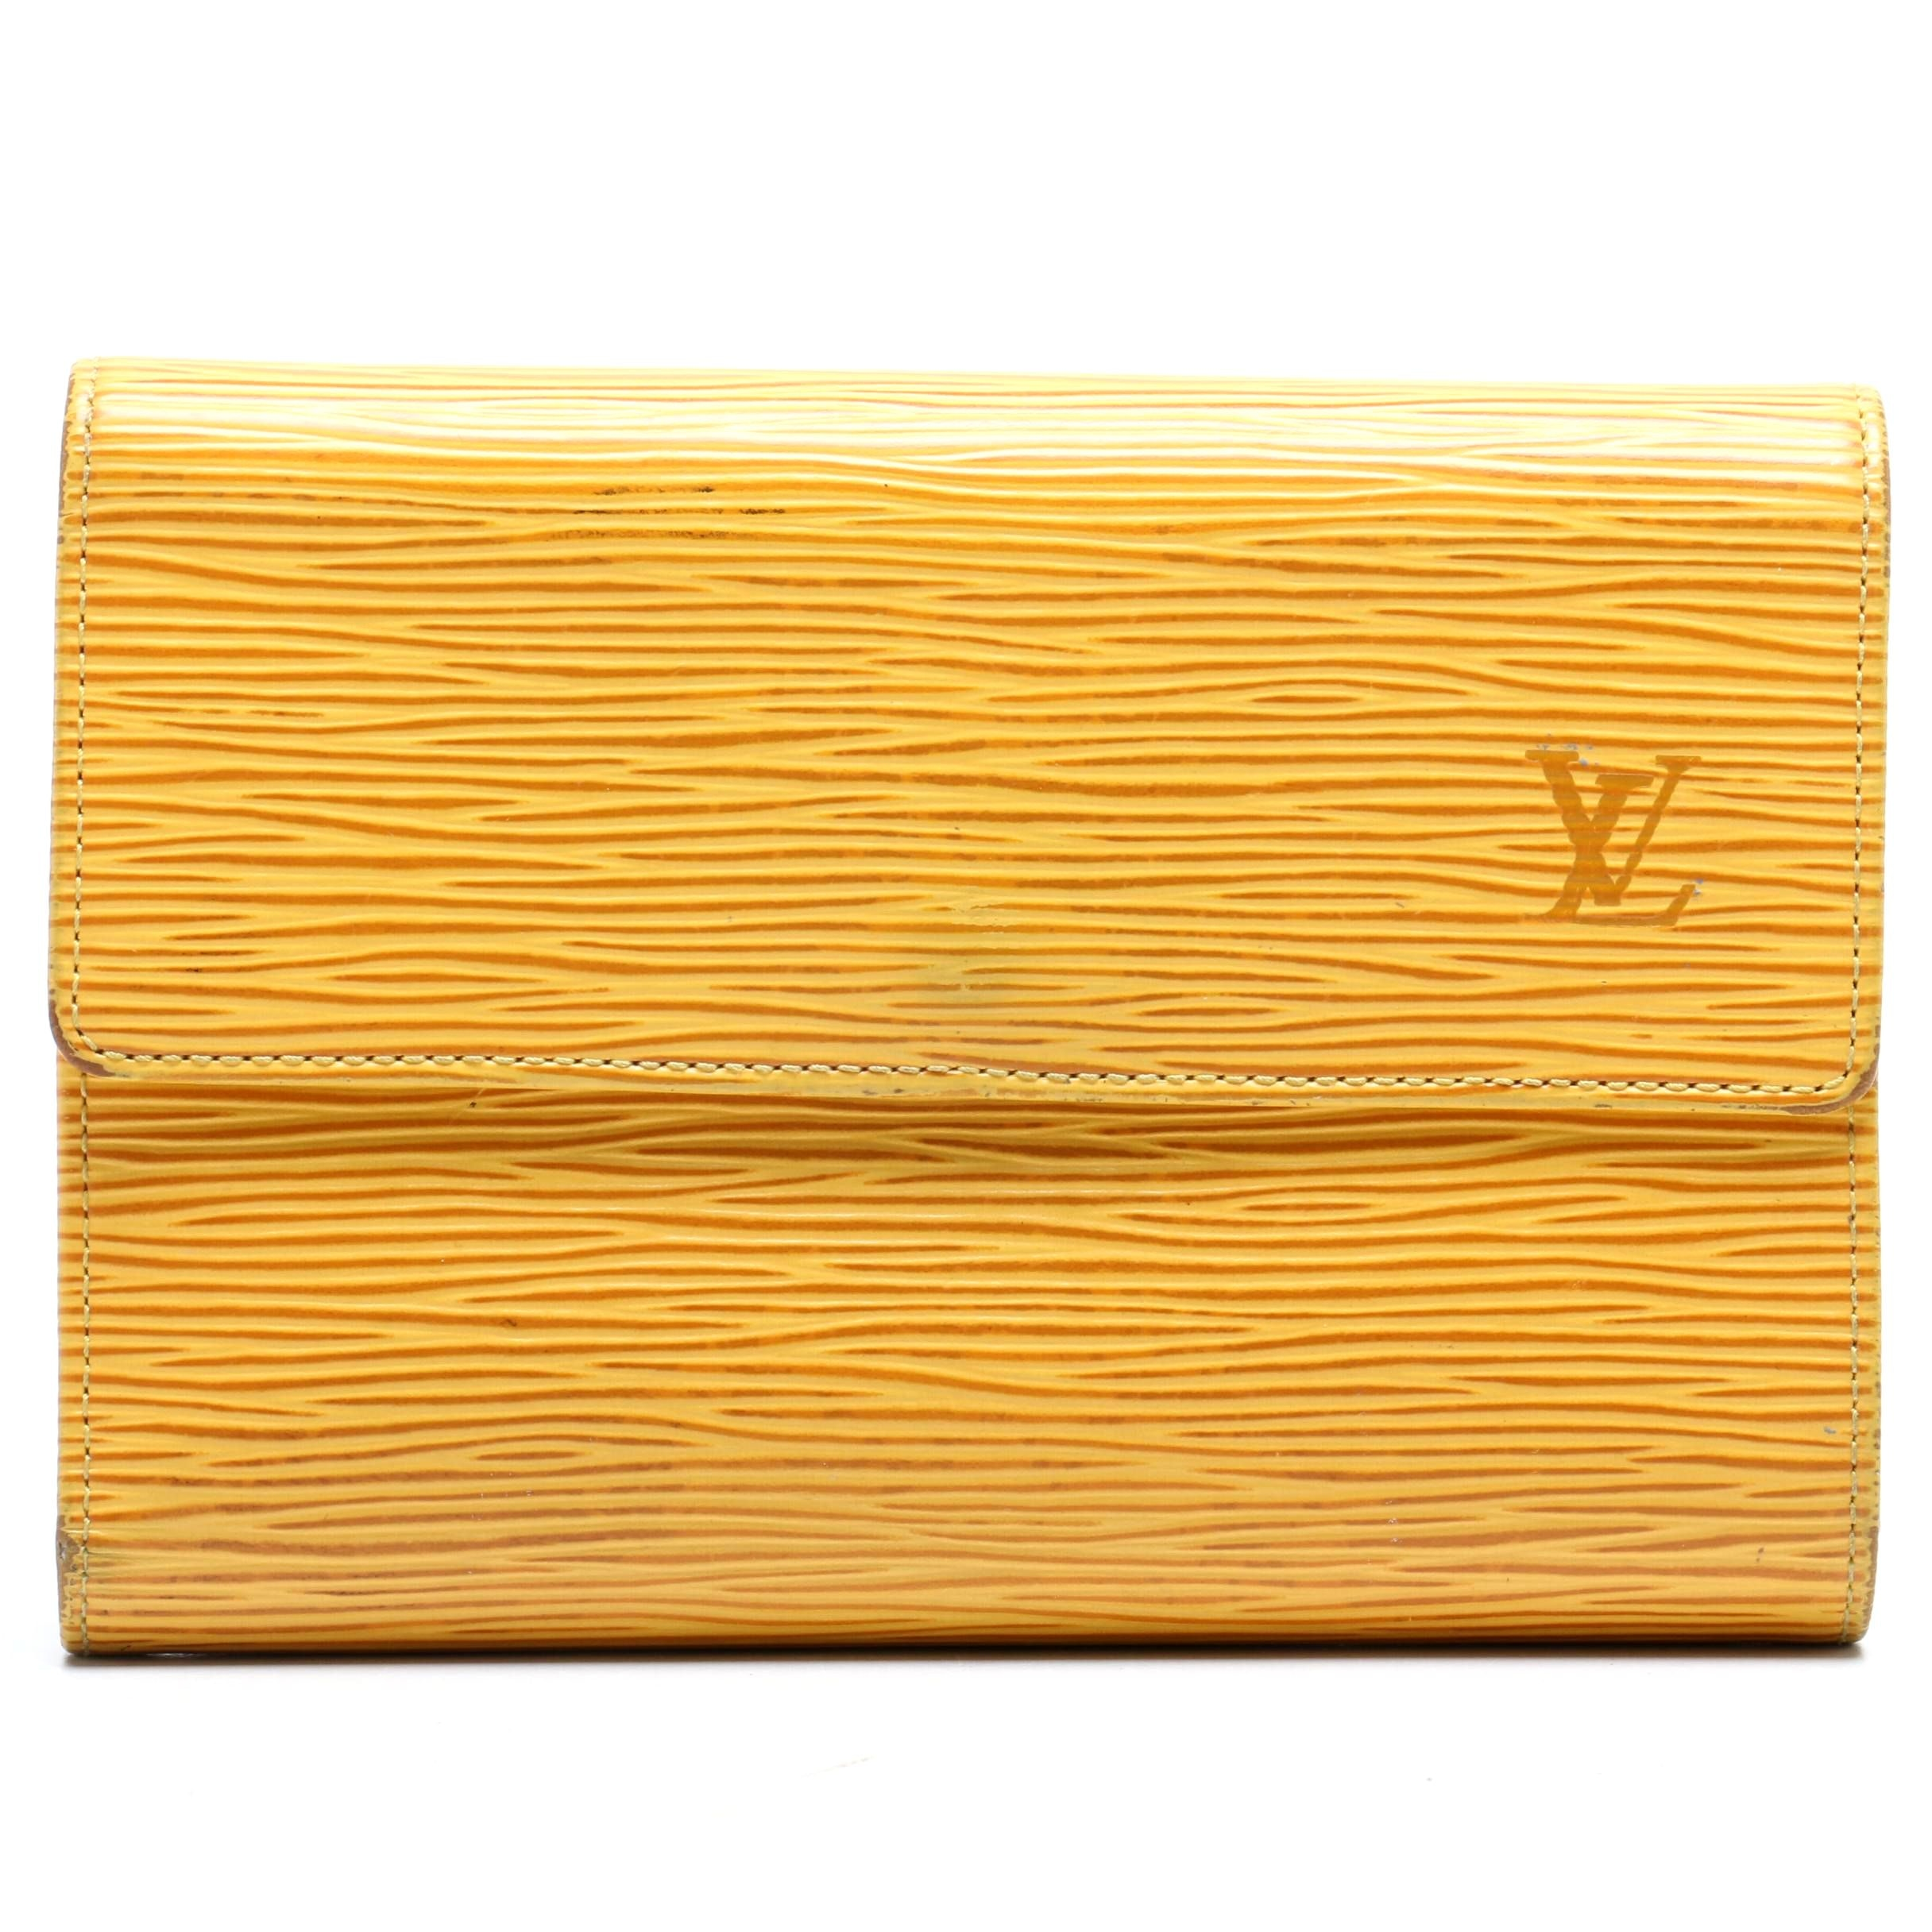 Louis Vuitton Paris Tassil Yellow Epi Leather Ludlow Wallet